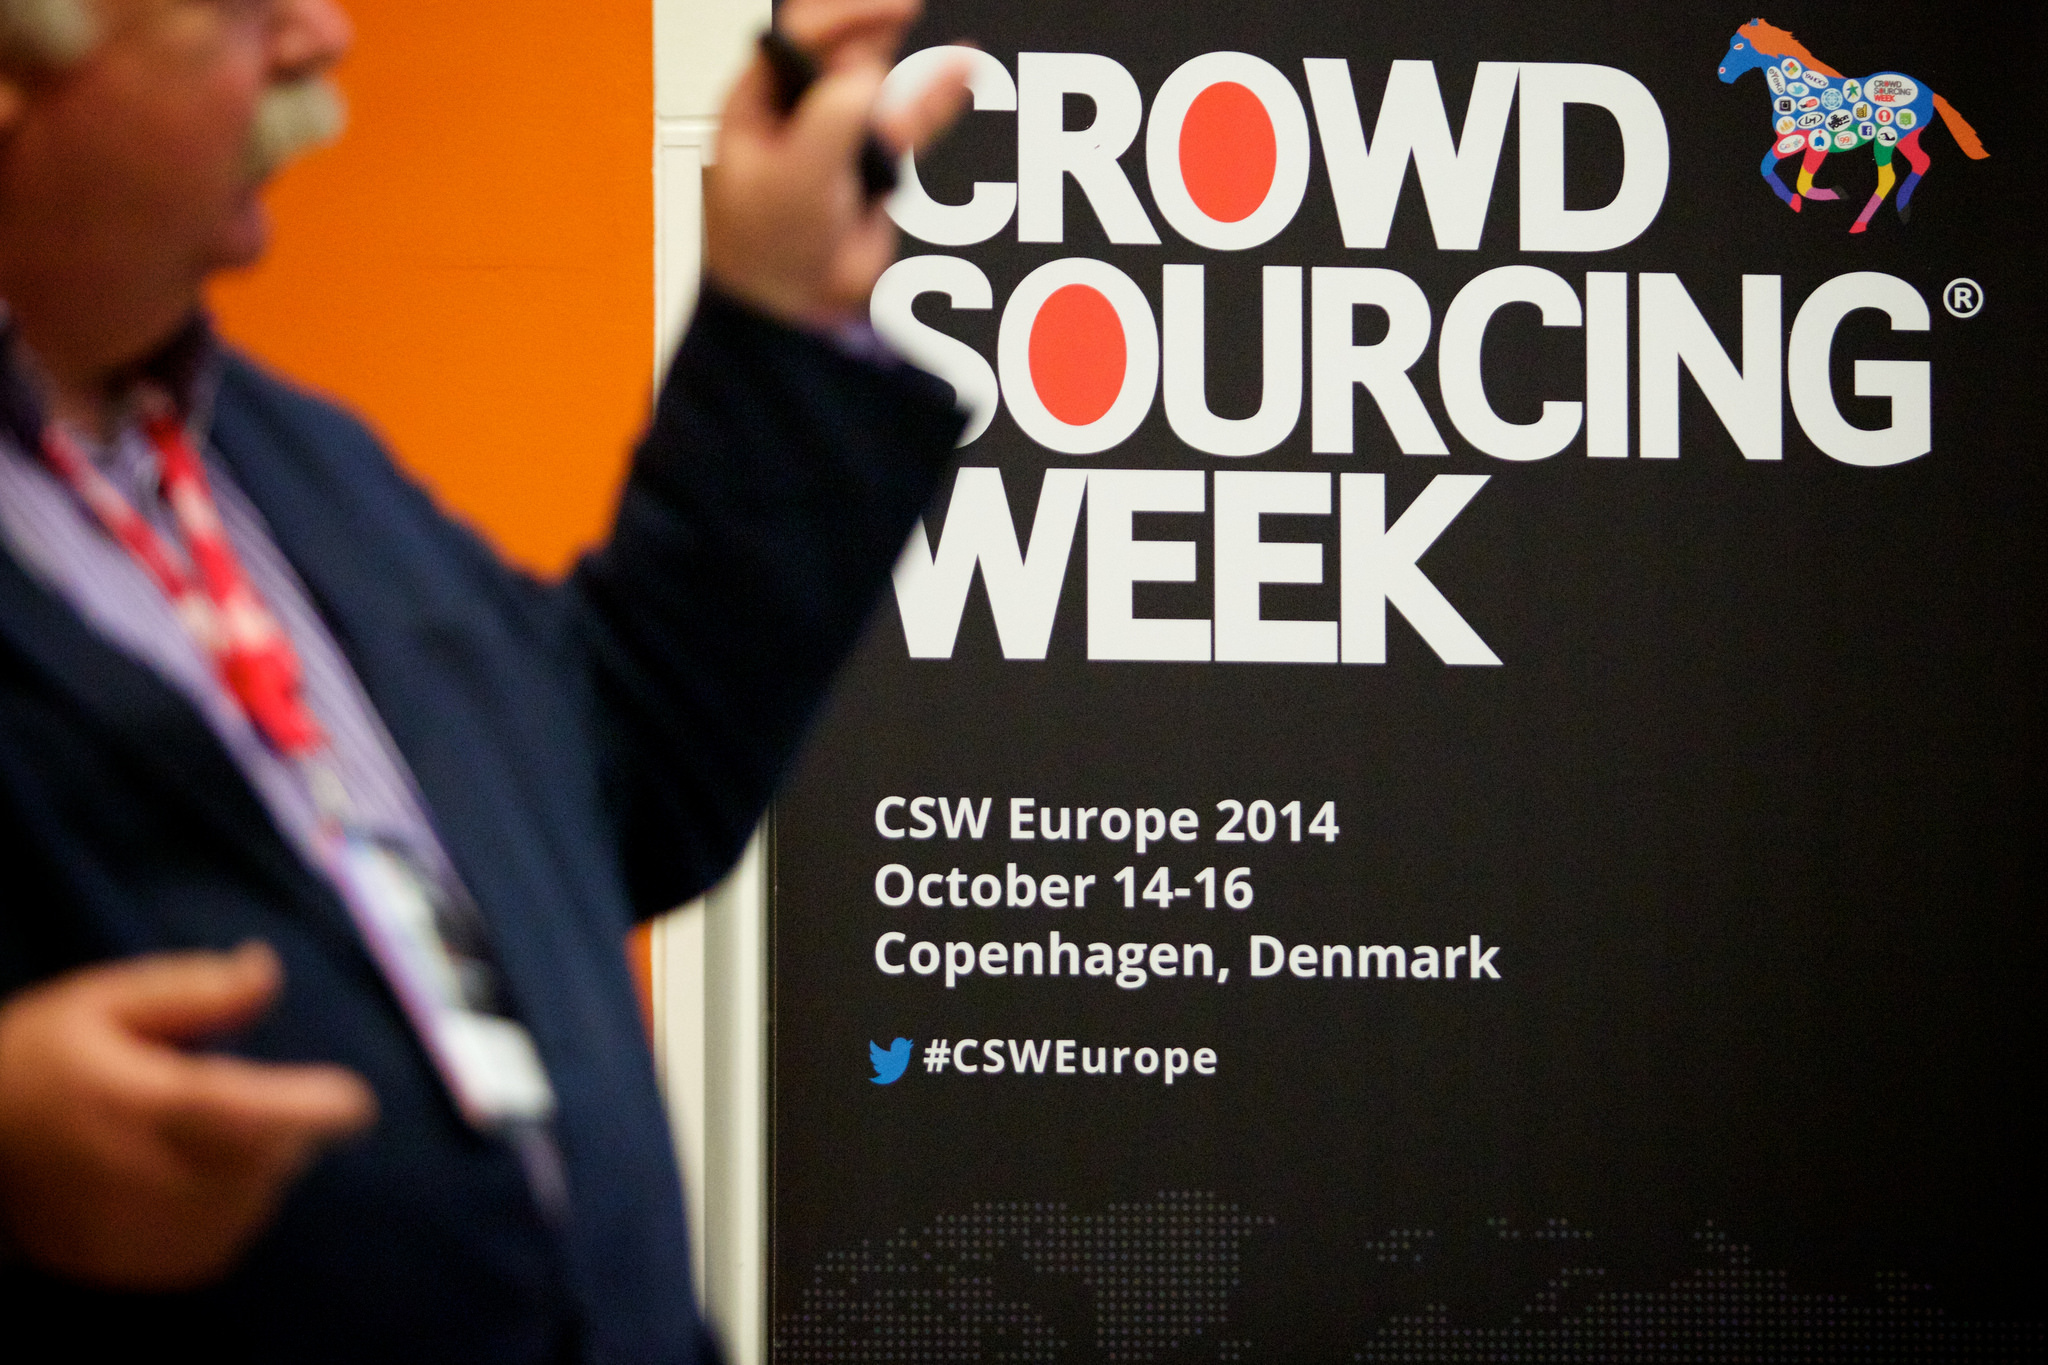 Crowdsourcing Week: Human-centered design er nøglen til godt software